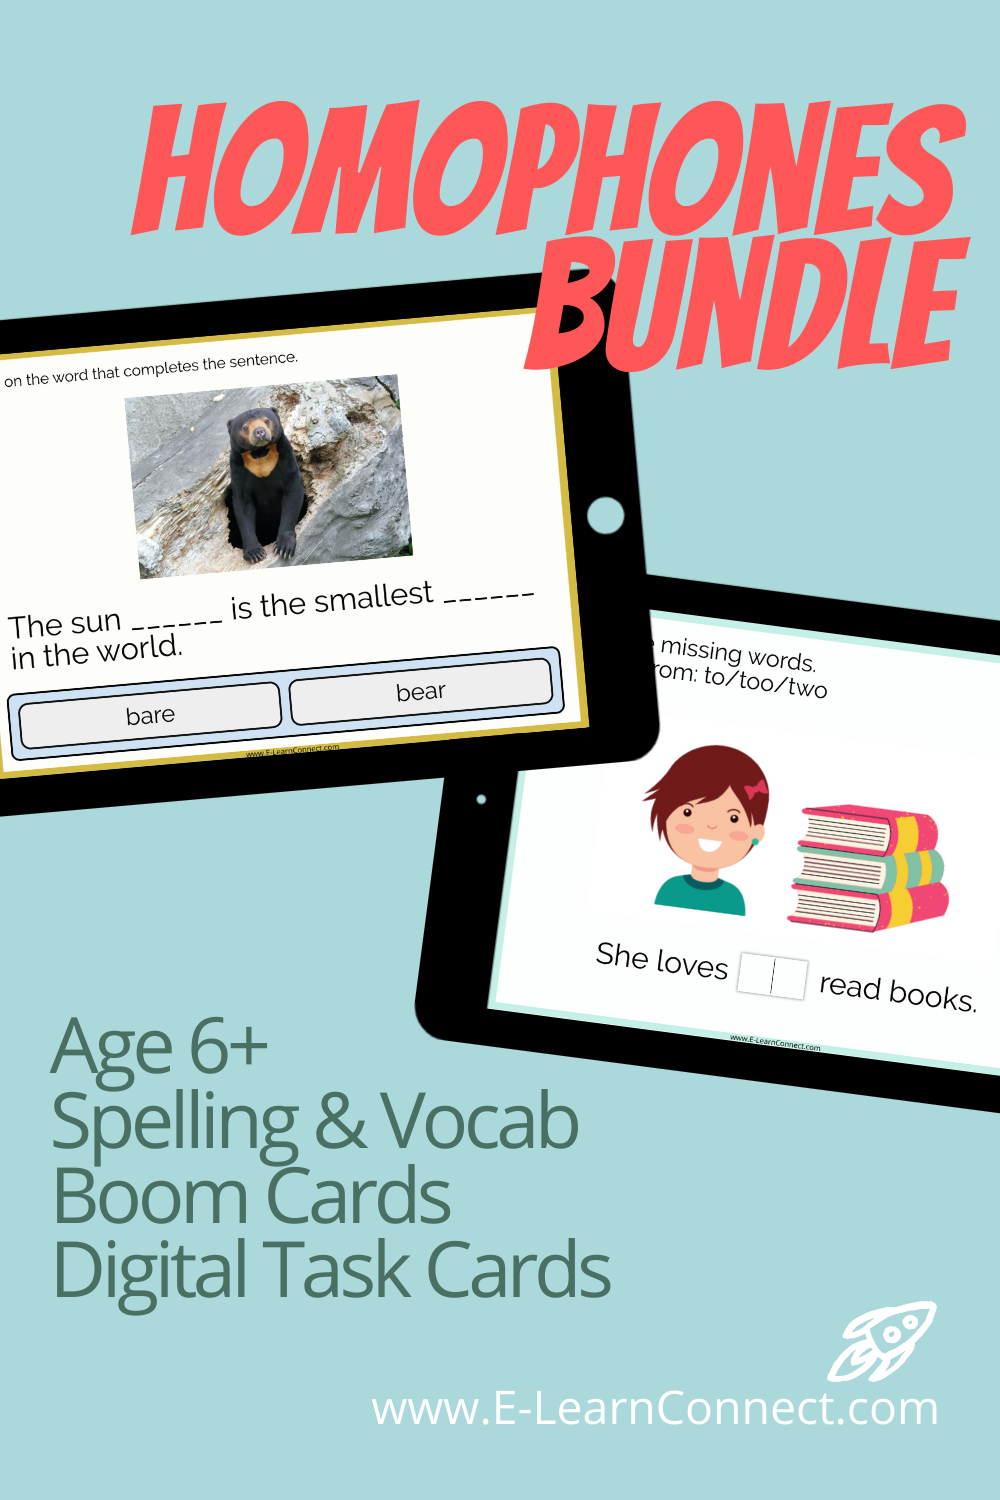 boom cards homophones for kids home learning ipad activity spelling english language